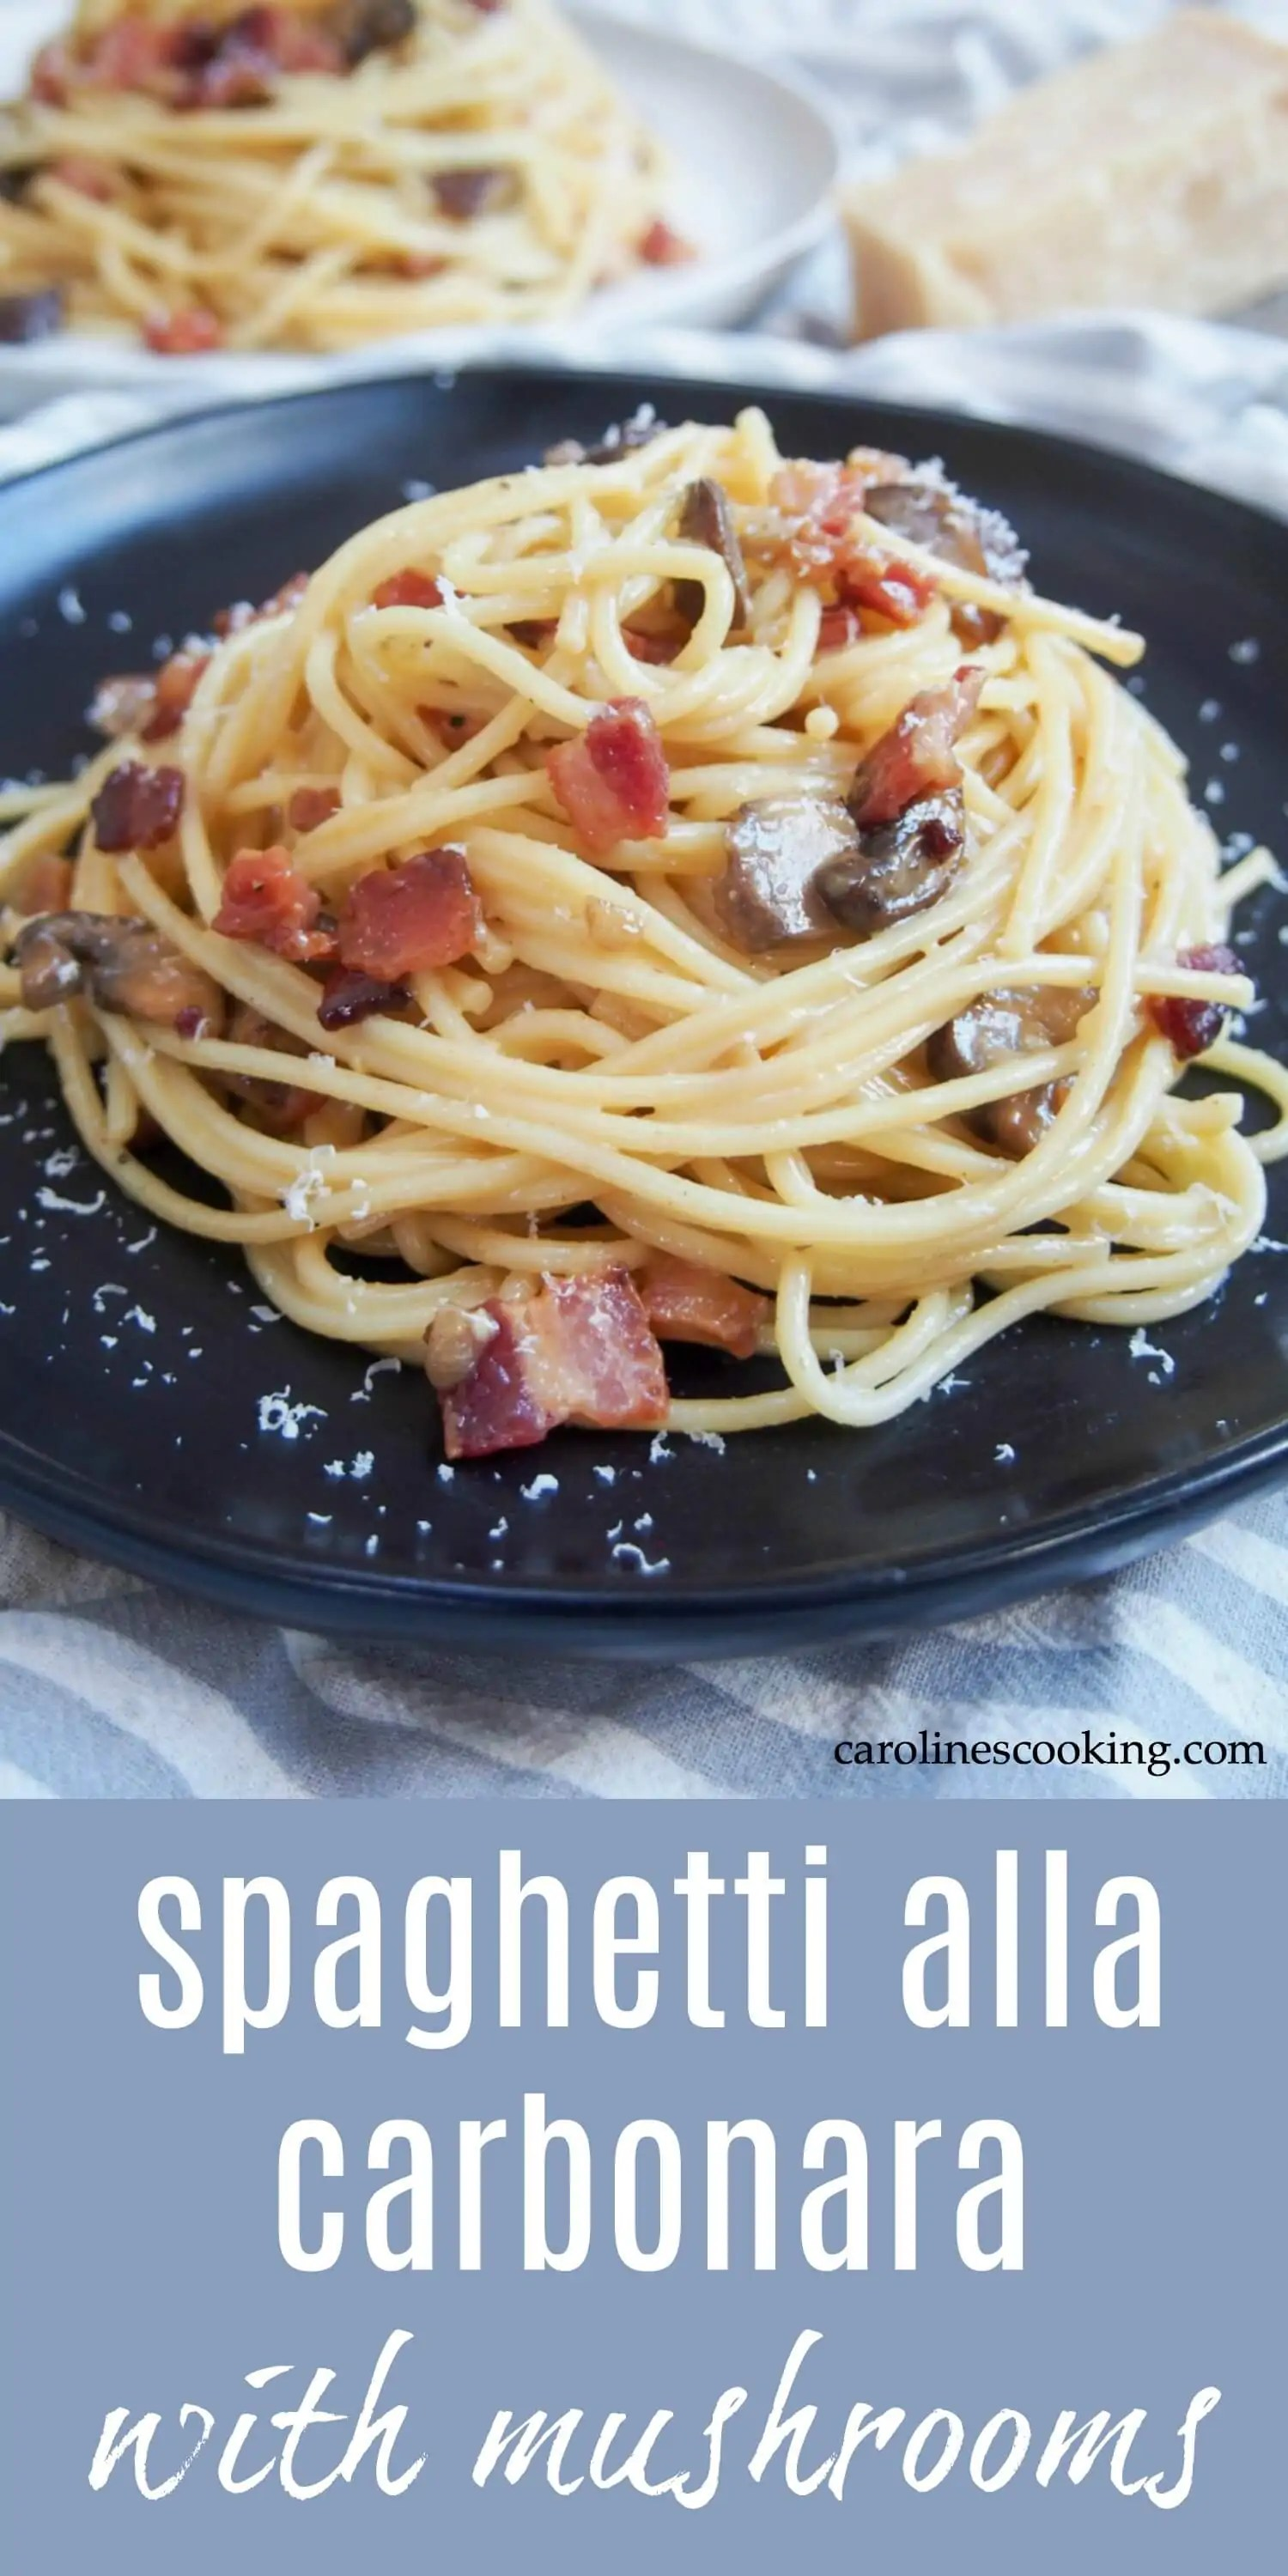 Spaghetti alla carbonara, like many classic Italian pasta dishes, is definitely one of those dishes where the end result feels like so much more than the small number of ingredients that go into it. But with cheese and flavorful bacon/pancetta, how can you go wrong? It's quick to make and a wonderfully delicious dinner. #pasta #carbonara #italianrecipe